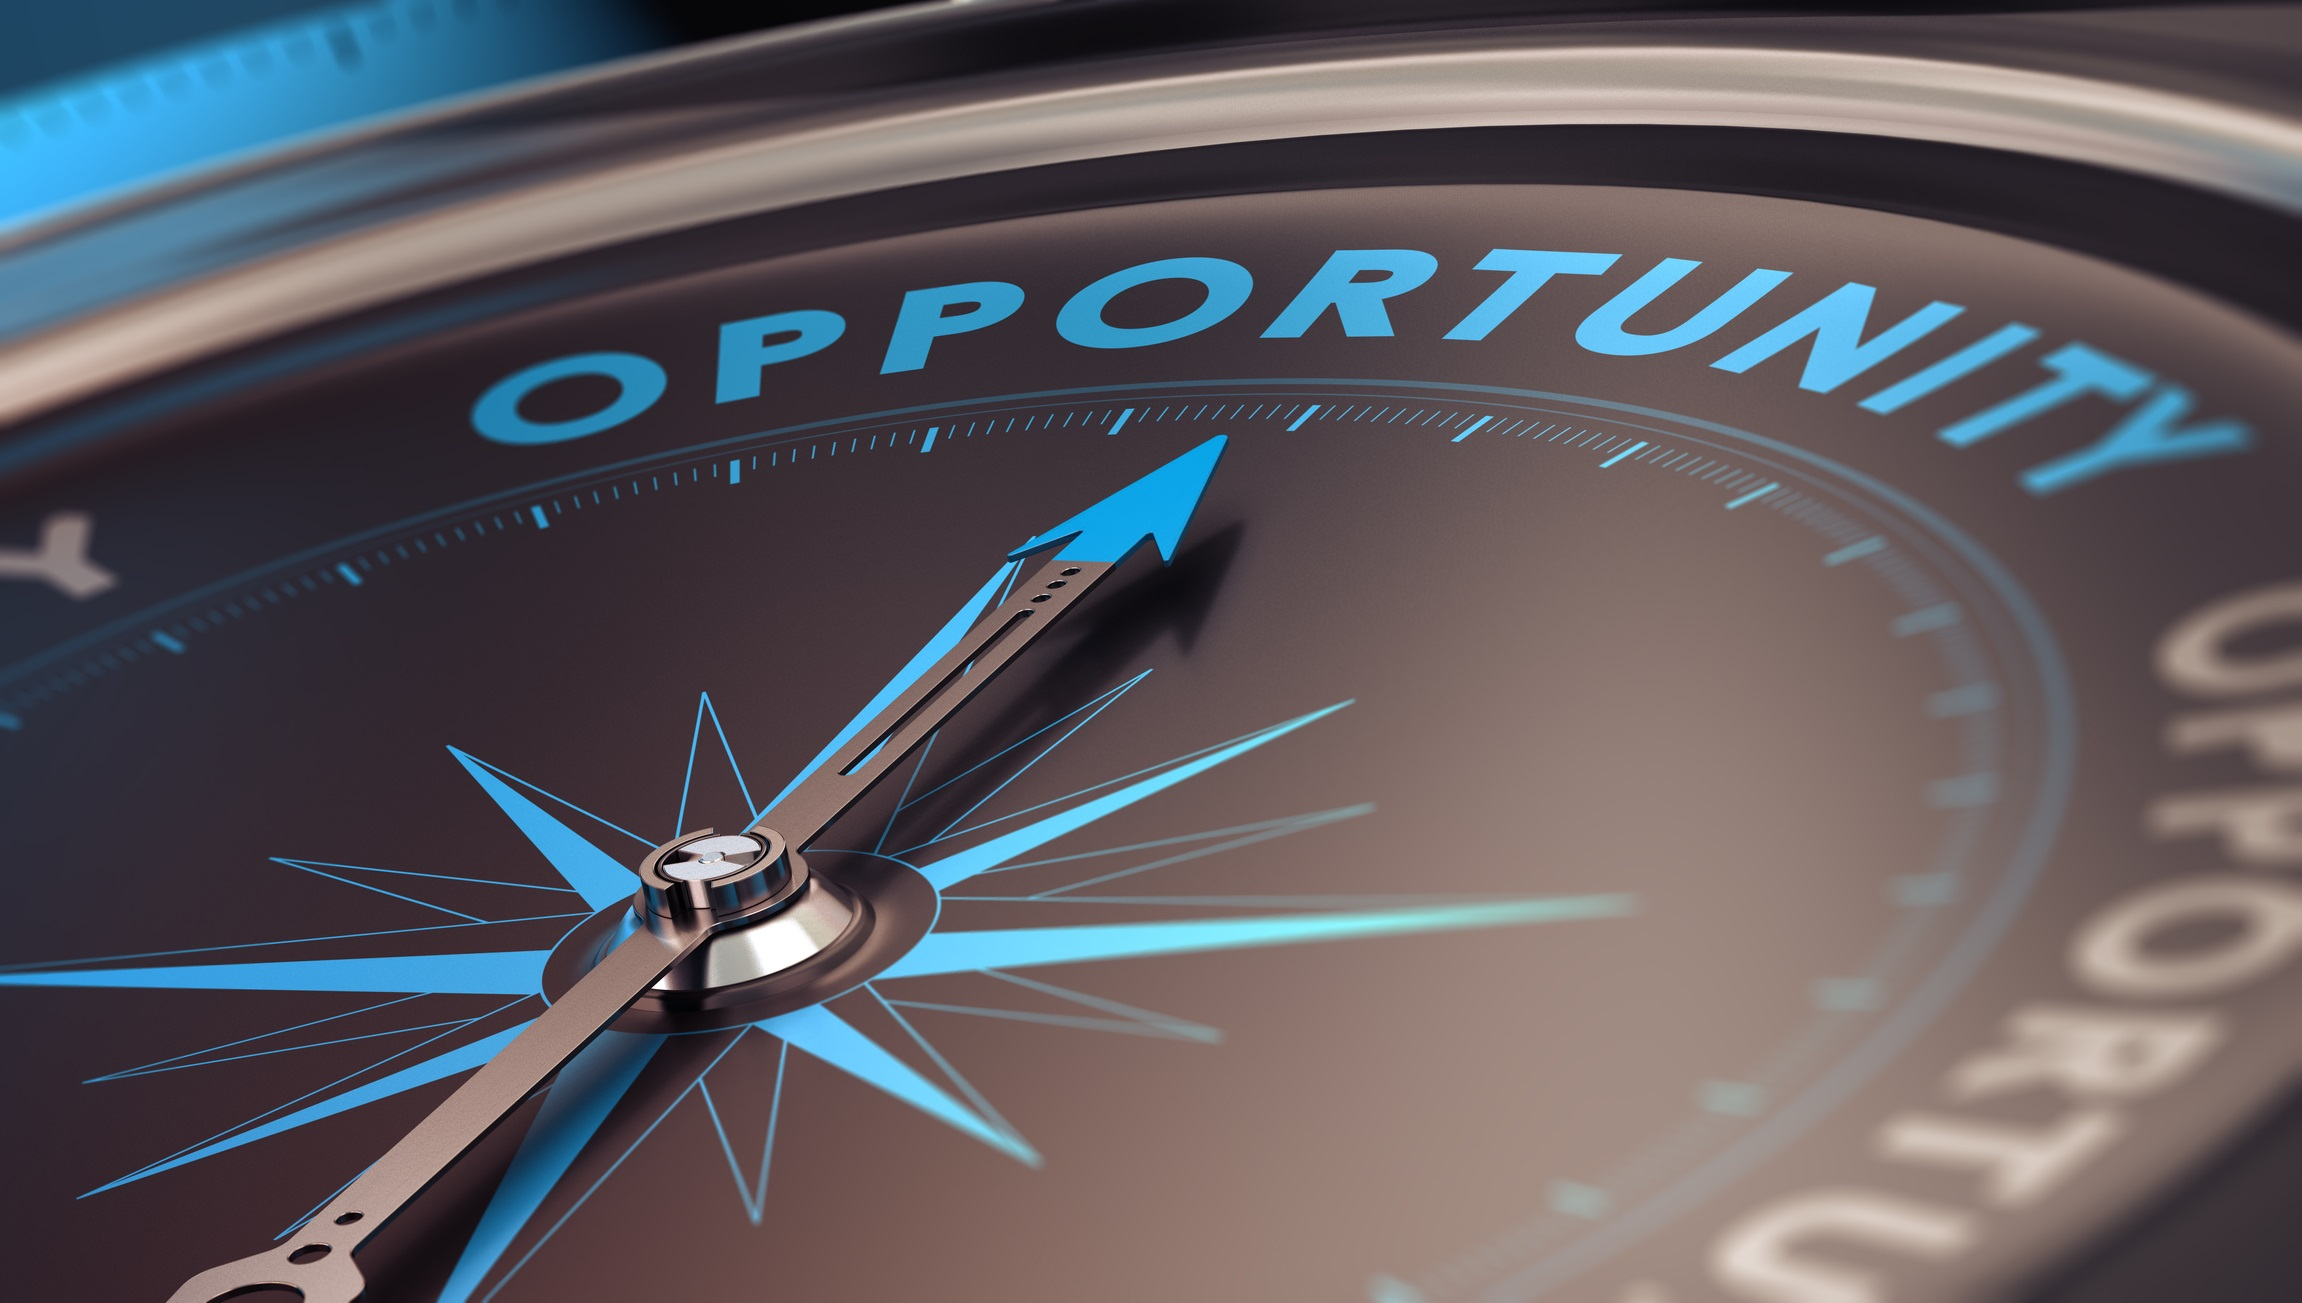 Qualified Opportunity Zones: Are They The 21st Century's New Deal?